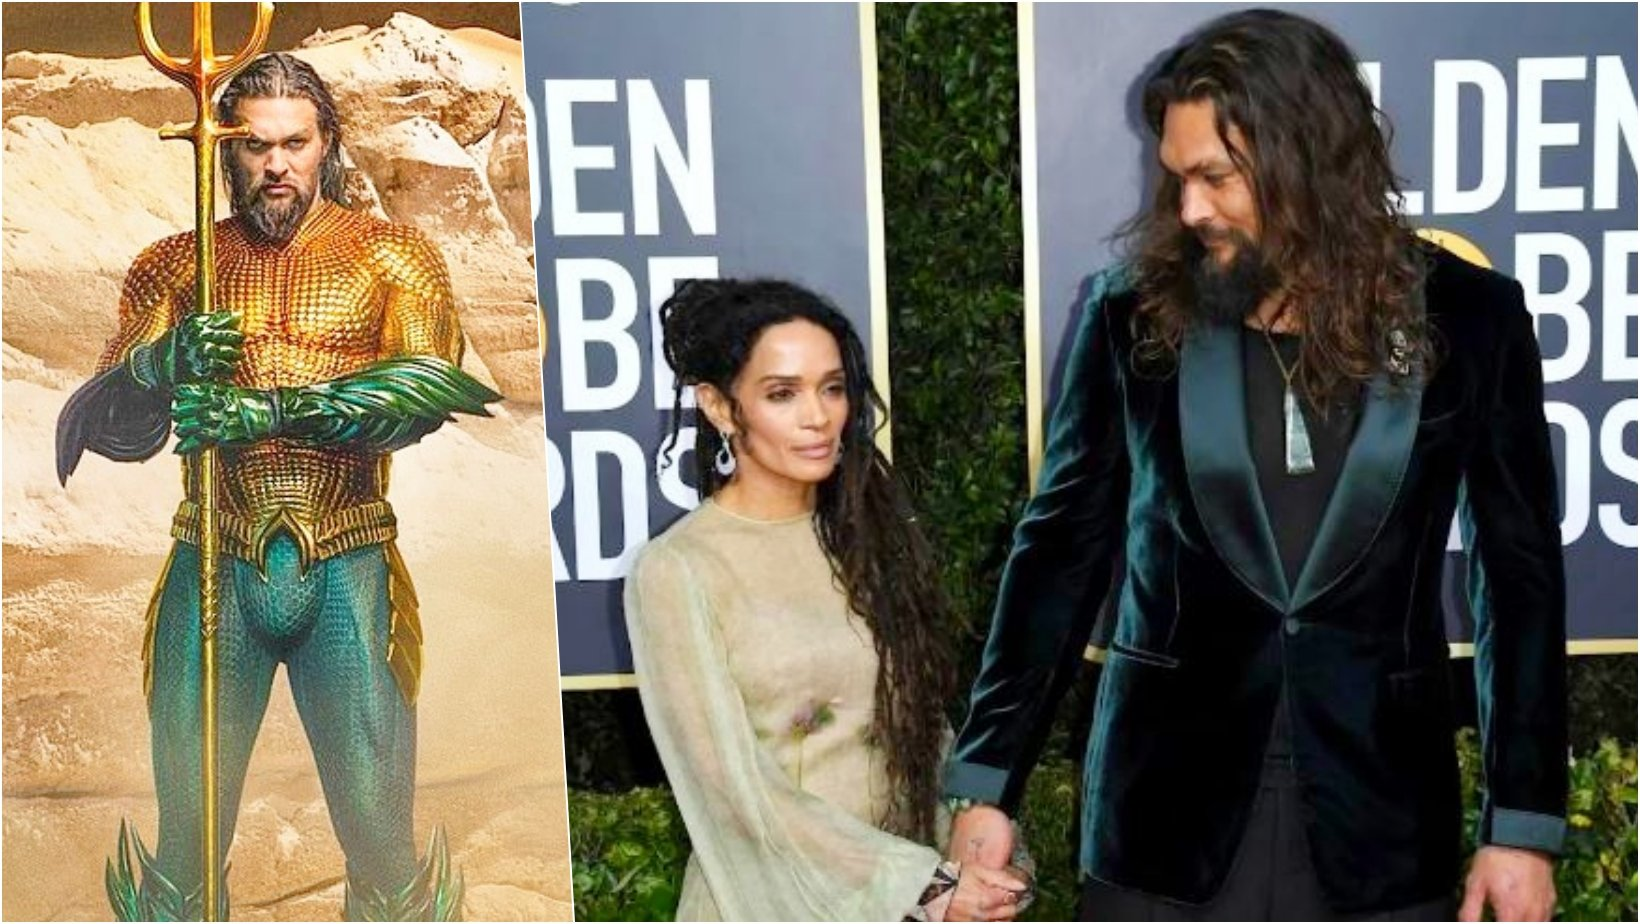 6 facebook cover 9.jpg?resize=1200,630 - Despite The Tough Look, Jason Momoa Reveals That He's Absolutely Terrified Of His Wife